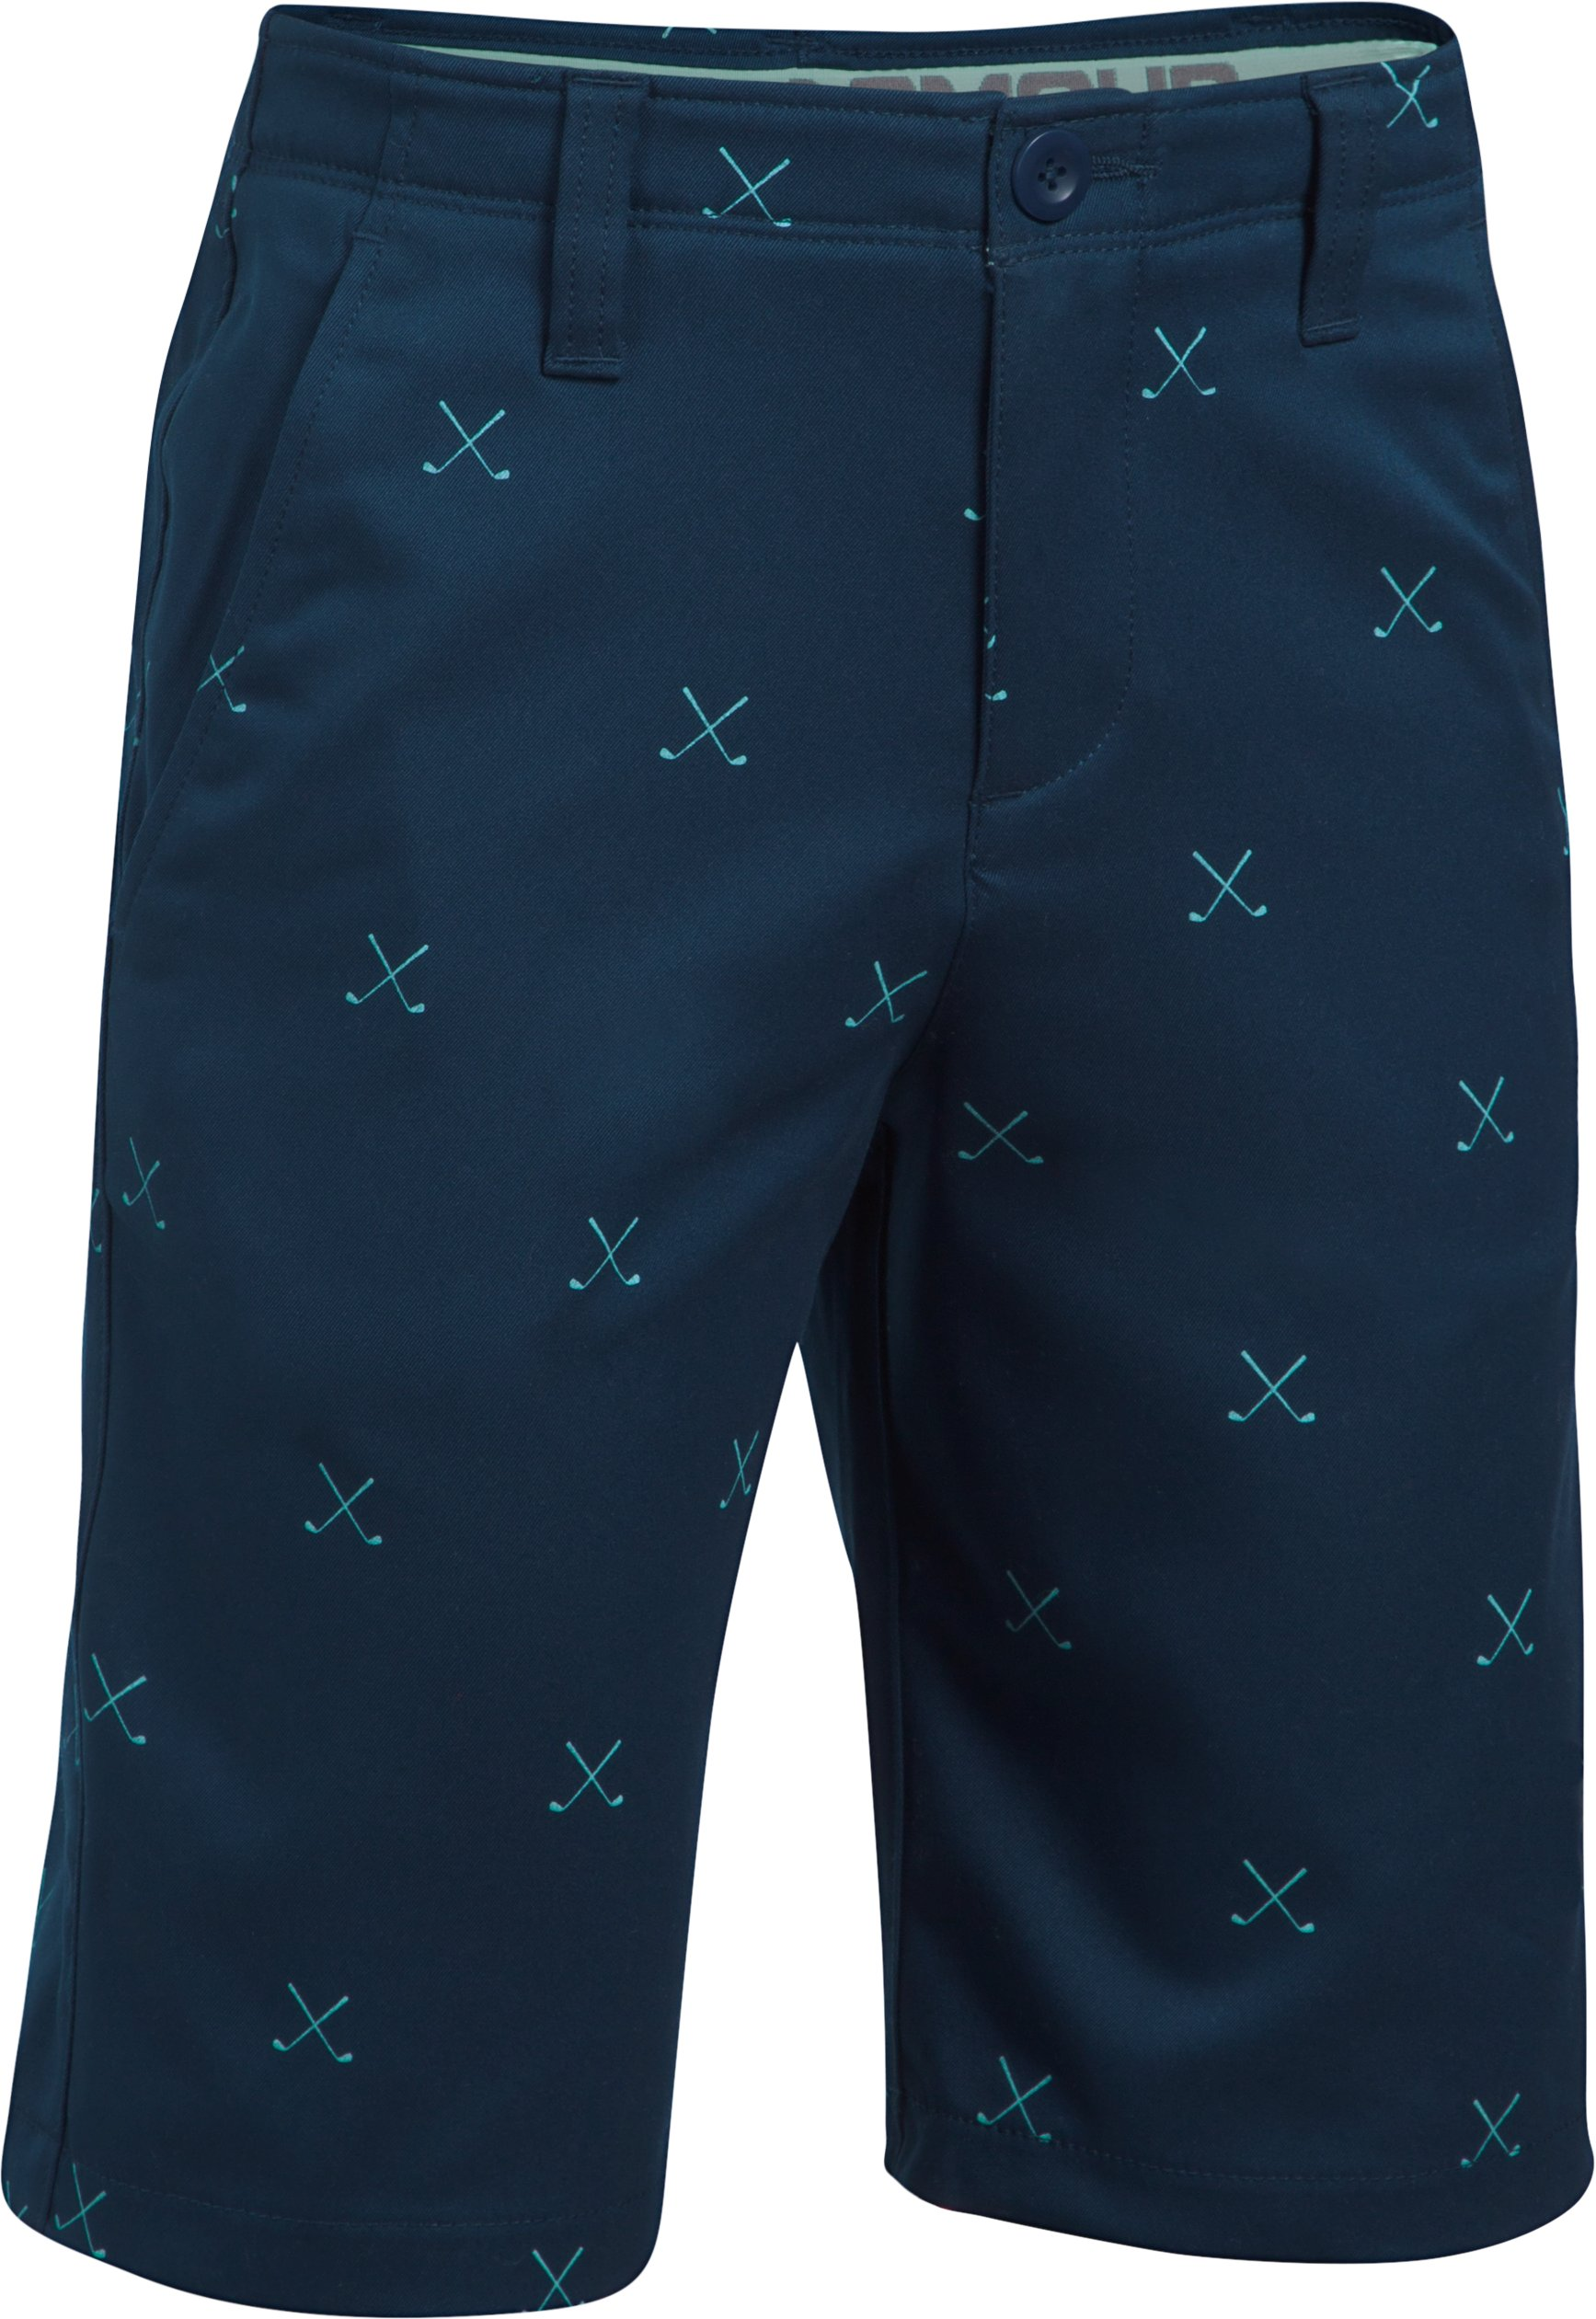 Boys' UA Match Play Printed Shorts, Academy, undefined